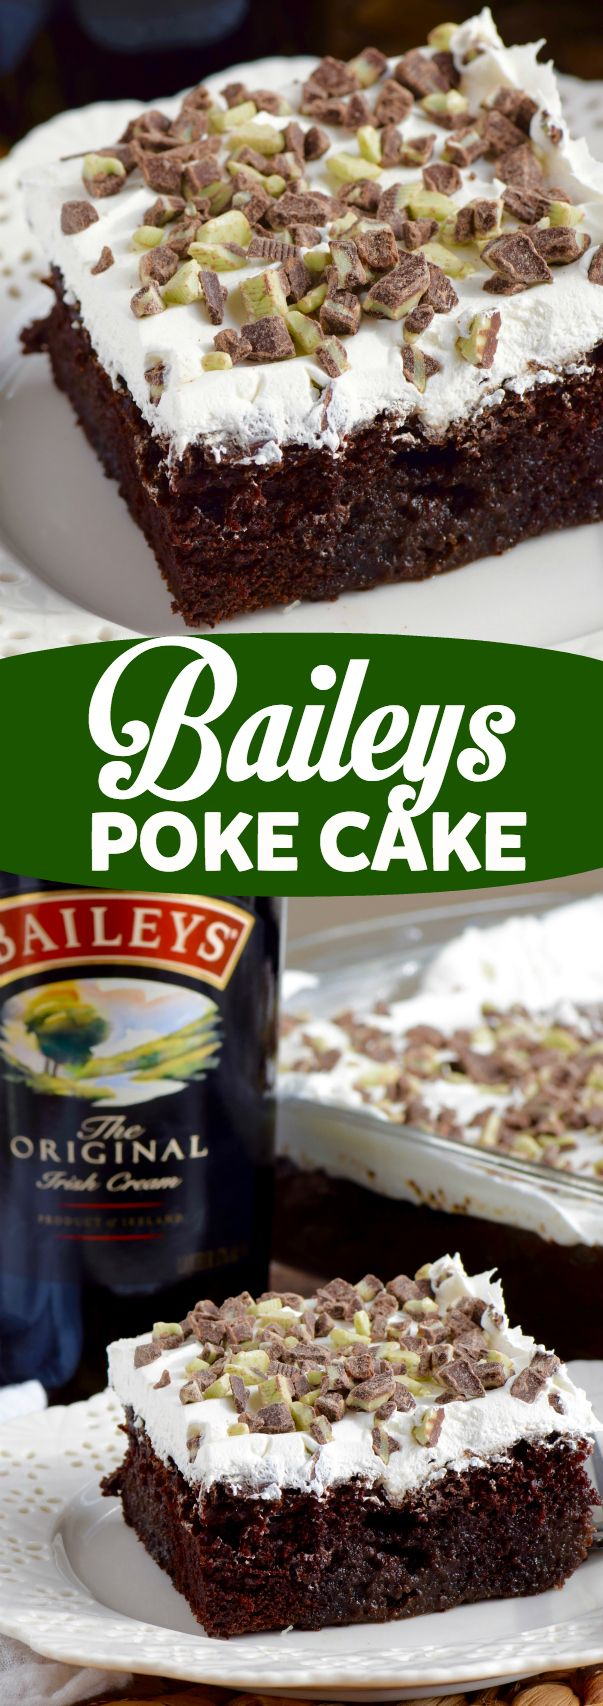 This Baileys Poke Cake is deliciously rich and totally AMAZING! You MUST make it!